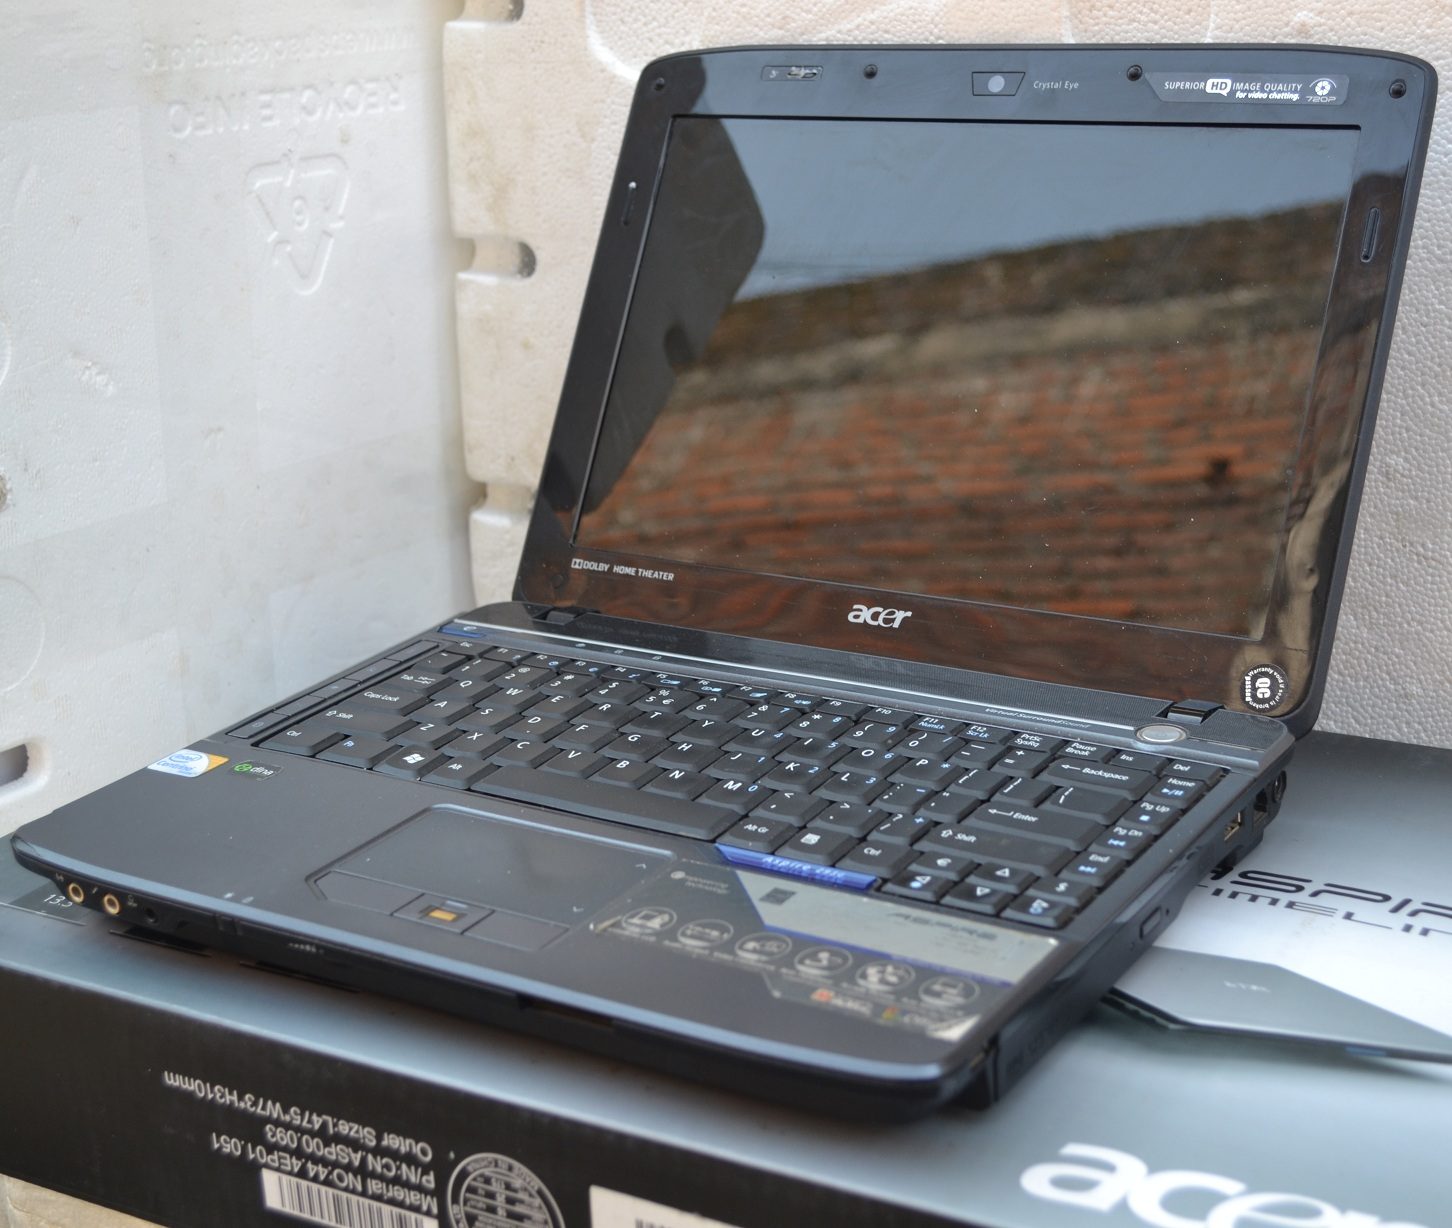 ACER ASPIRE 2930 WIRELESS LAN WINDOWS 7 DRIVERS DOWNLOAD